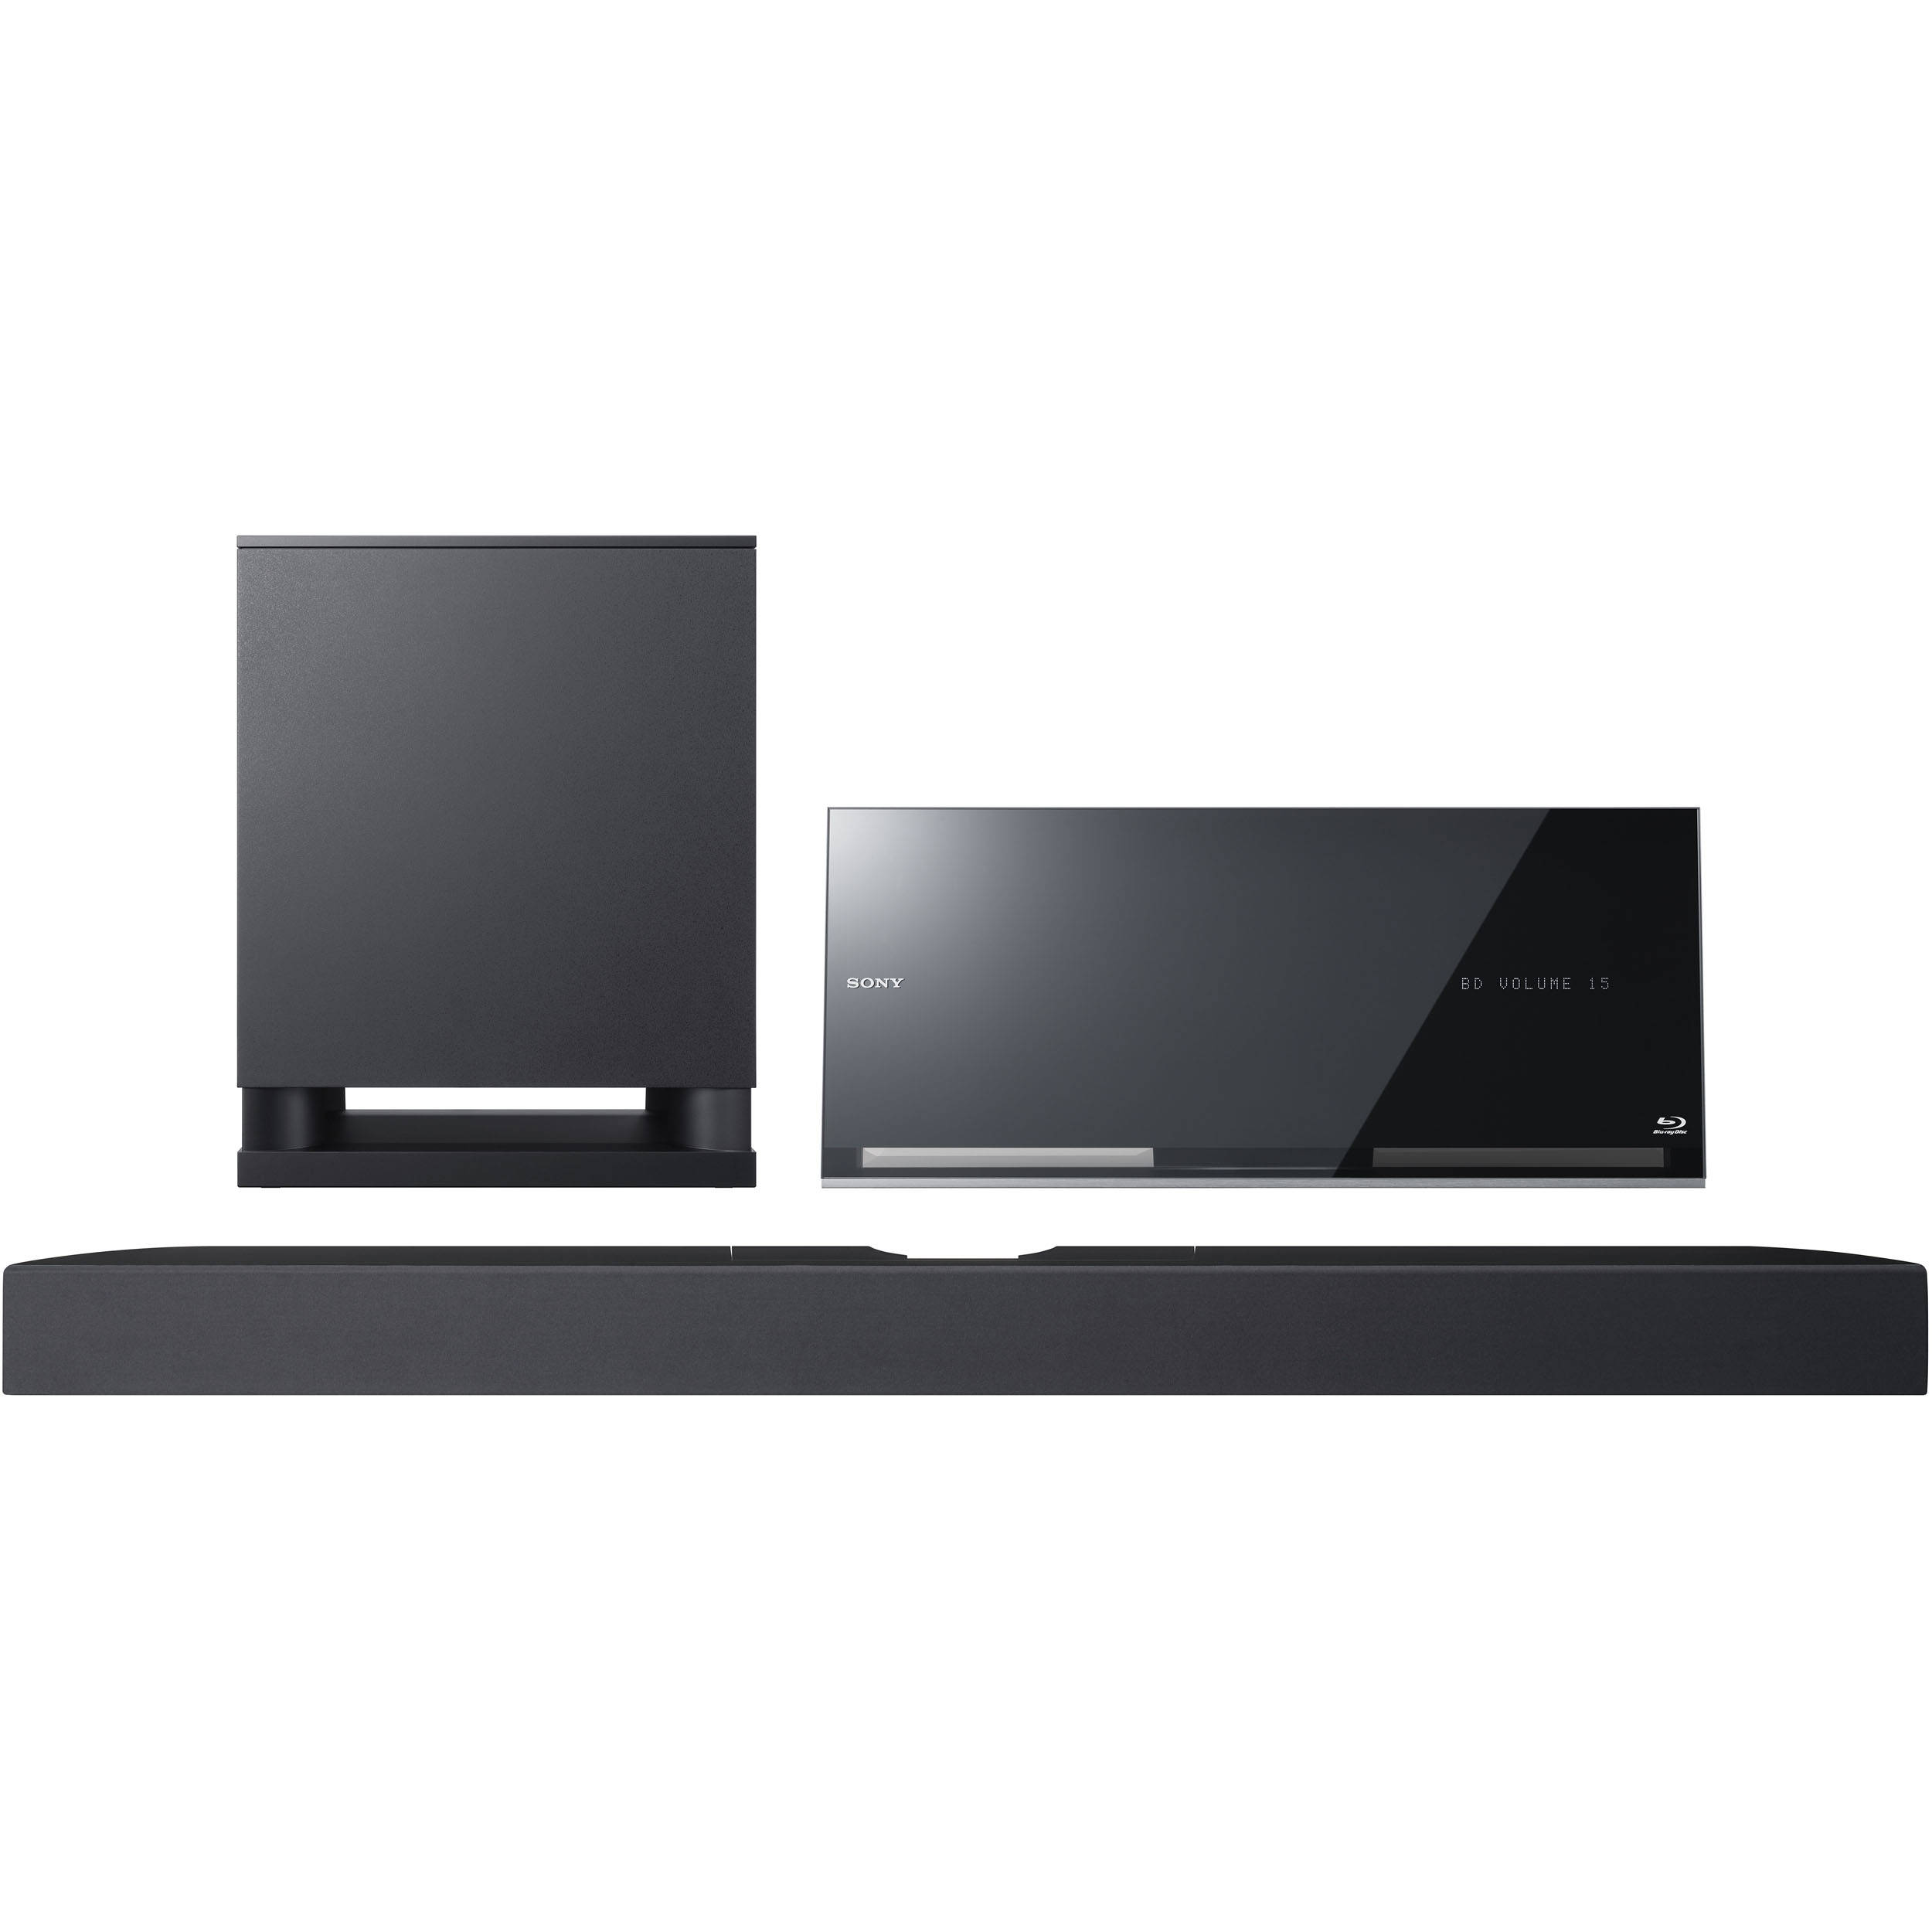 Sony BDV-F7 3D Blu-ray Disc Home Theater System